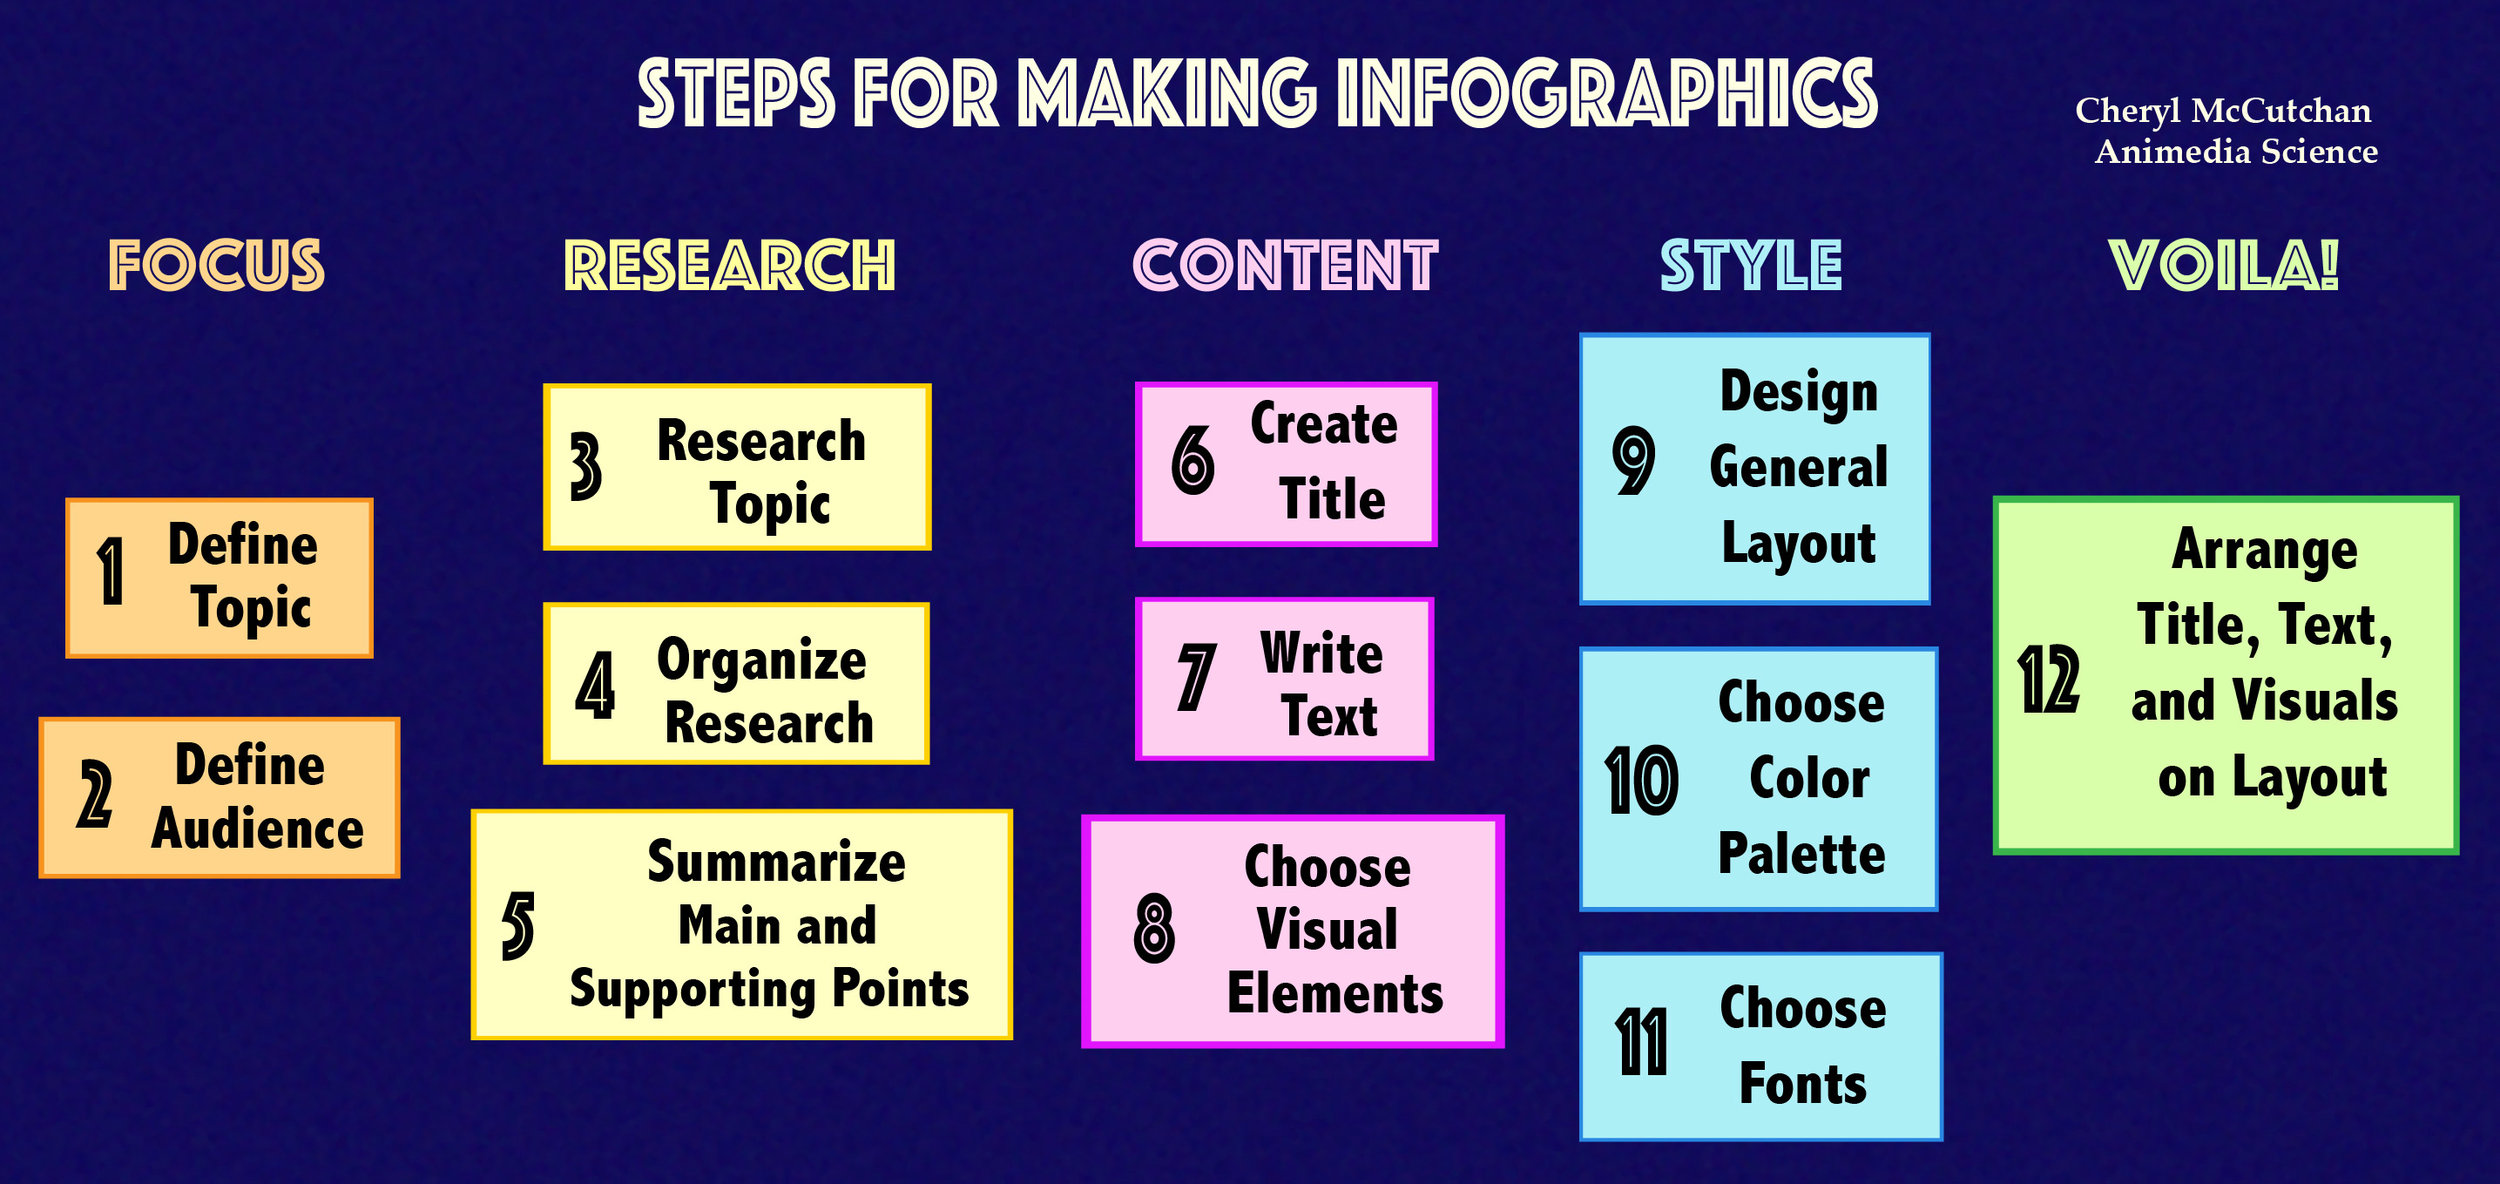 Steps for creating infographics.